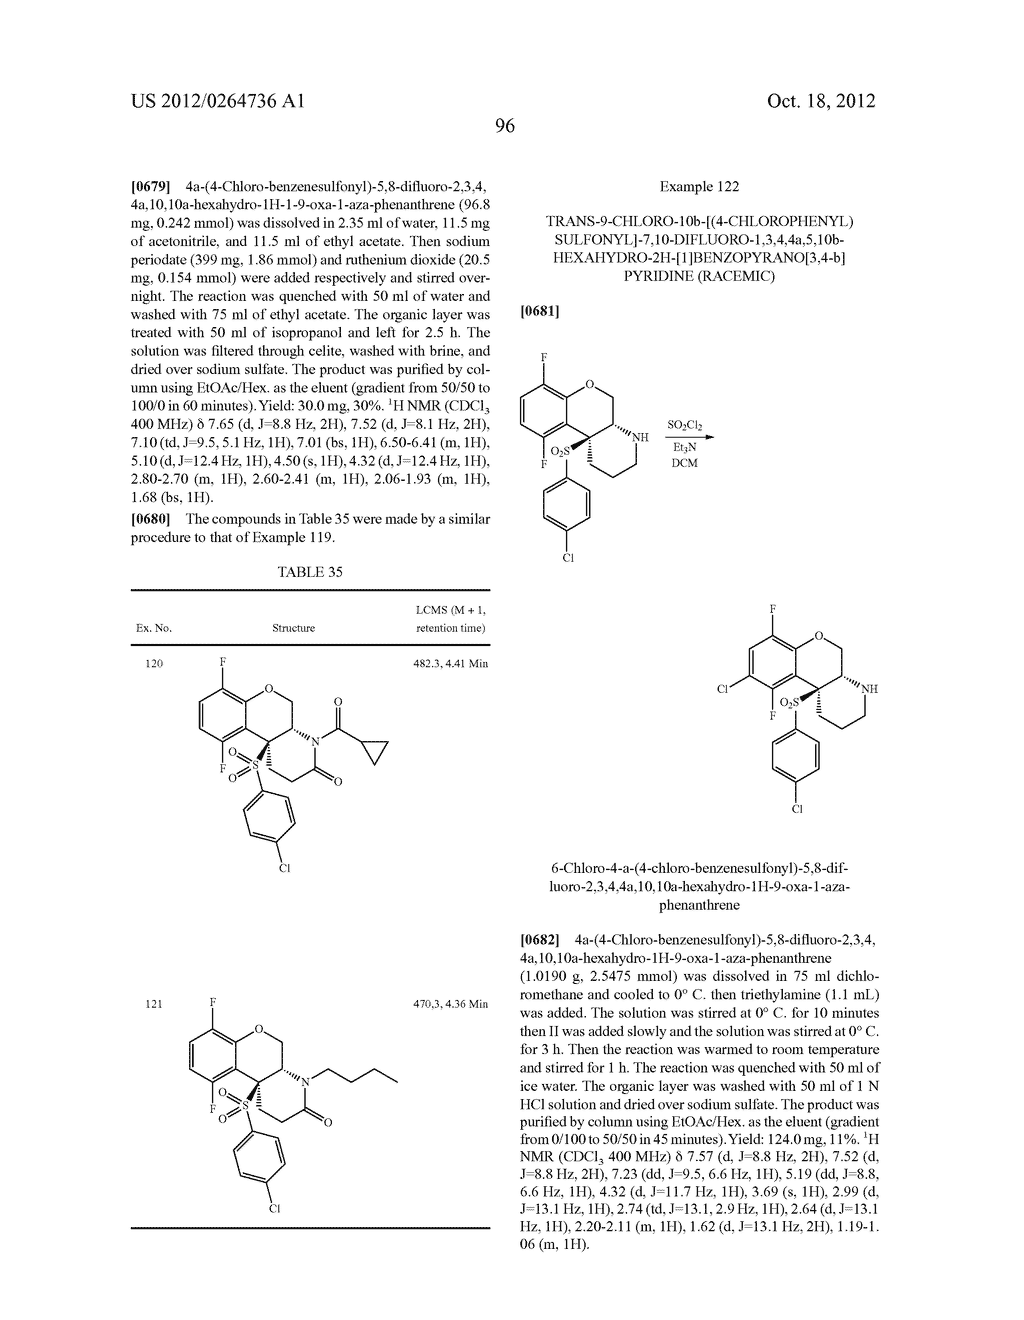 BENZENESULFONYL-CHROMANE, THIOCHROMANE, TETRAHYDRONAPHTHALENE AND RELATED     GAMMA SECRETASE INHIBITORS - diagram, schematic, and image 97